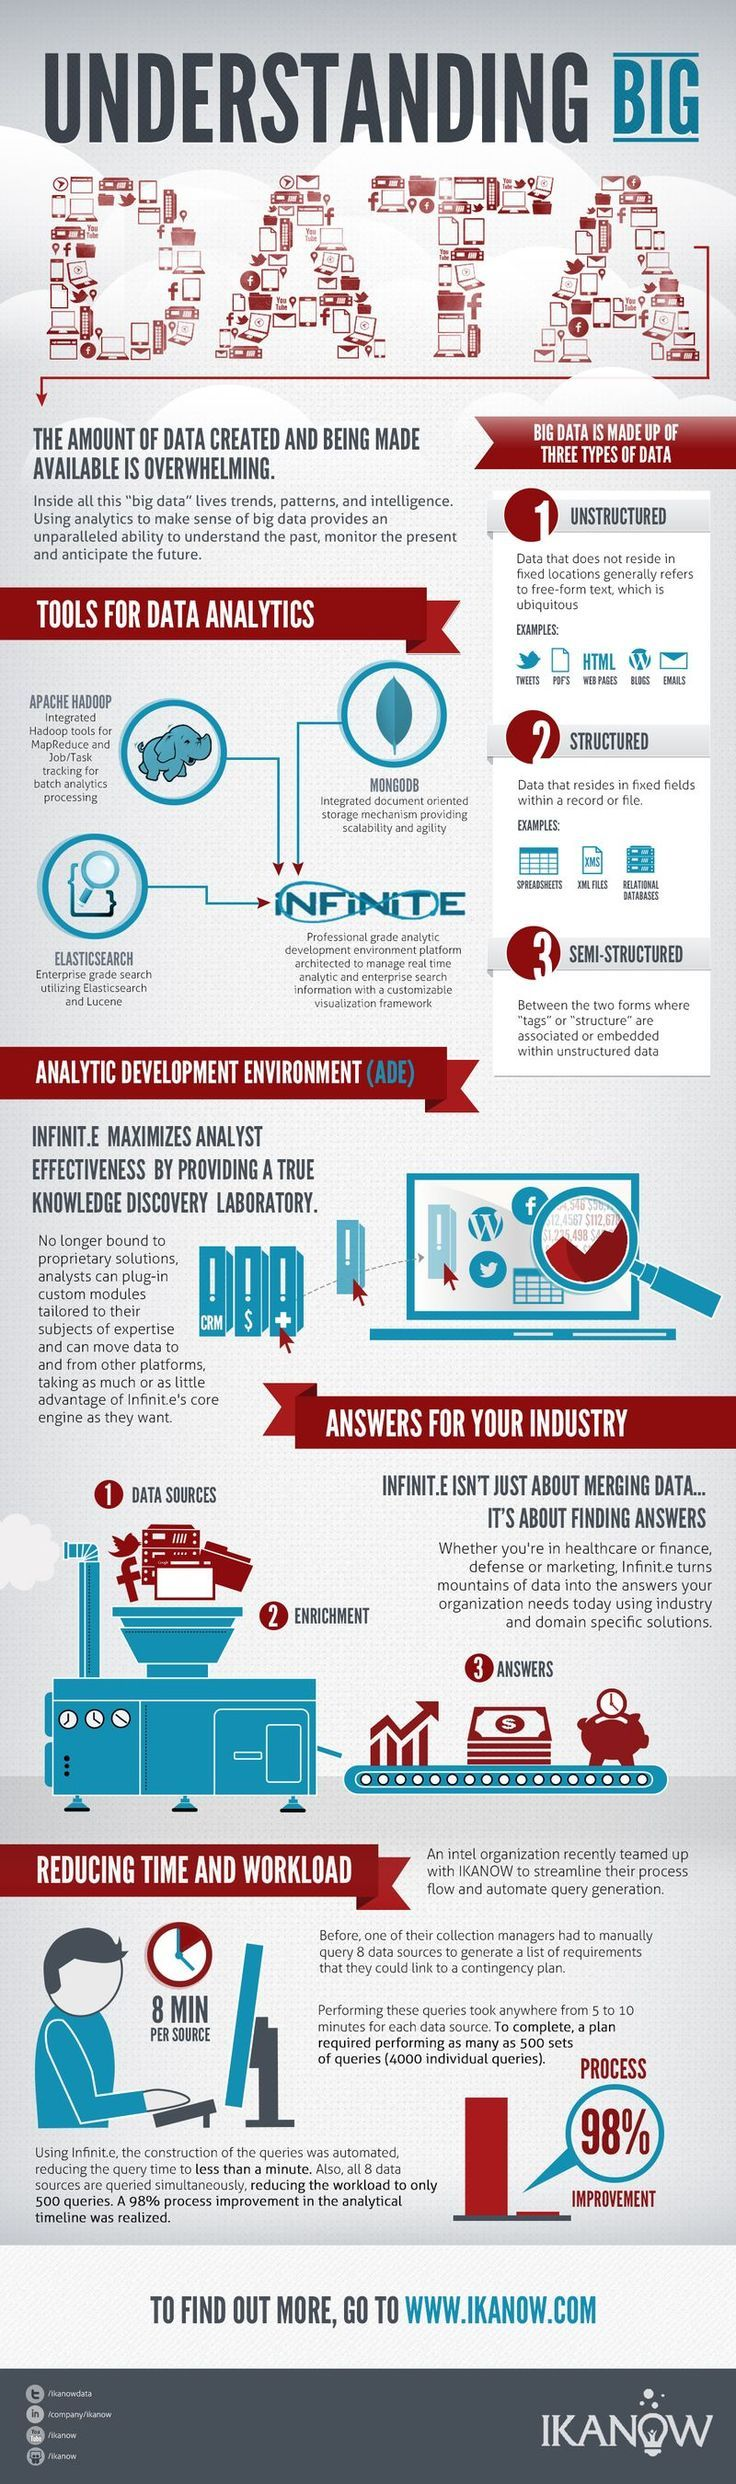 What Is Big Data And What Are Some Tools For Analytics? For more information on Big Data, visit - http://www.happiestminds.com/big-data/ #bigdata #Infographic